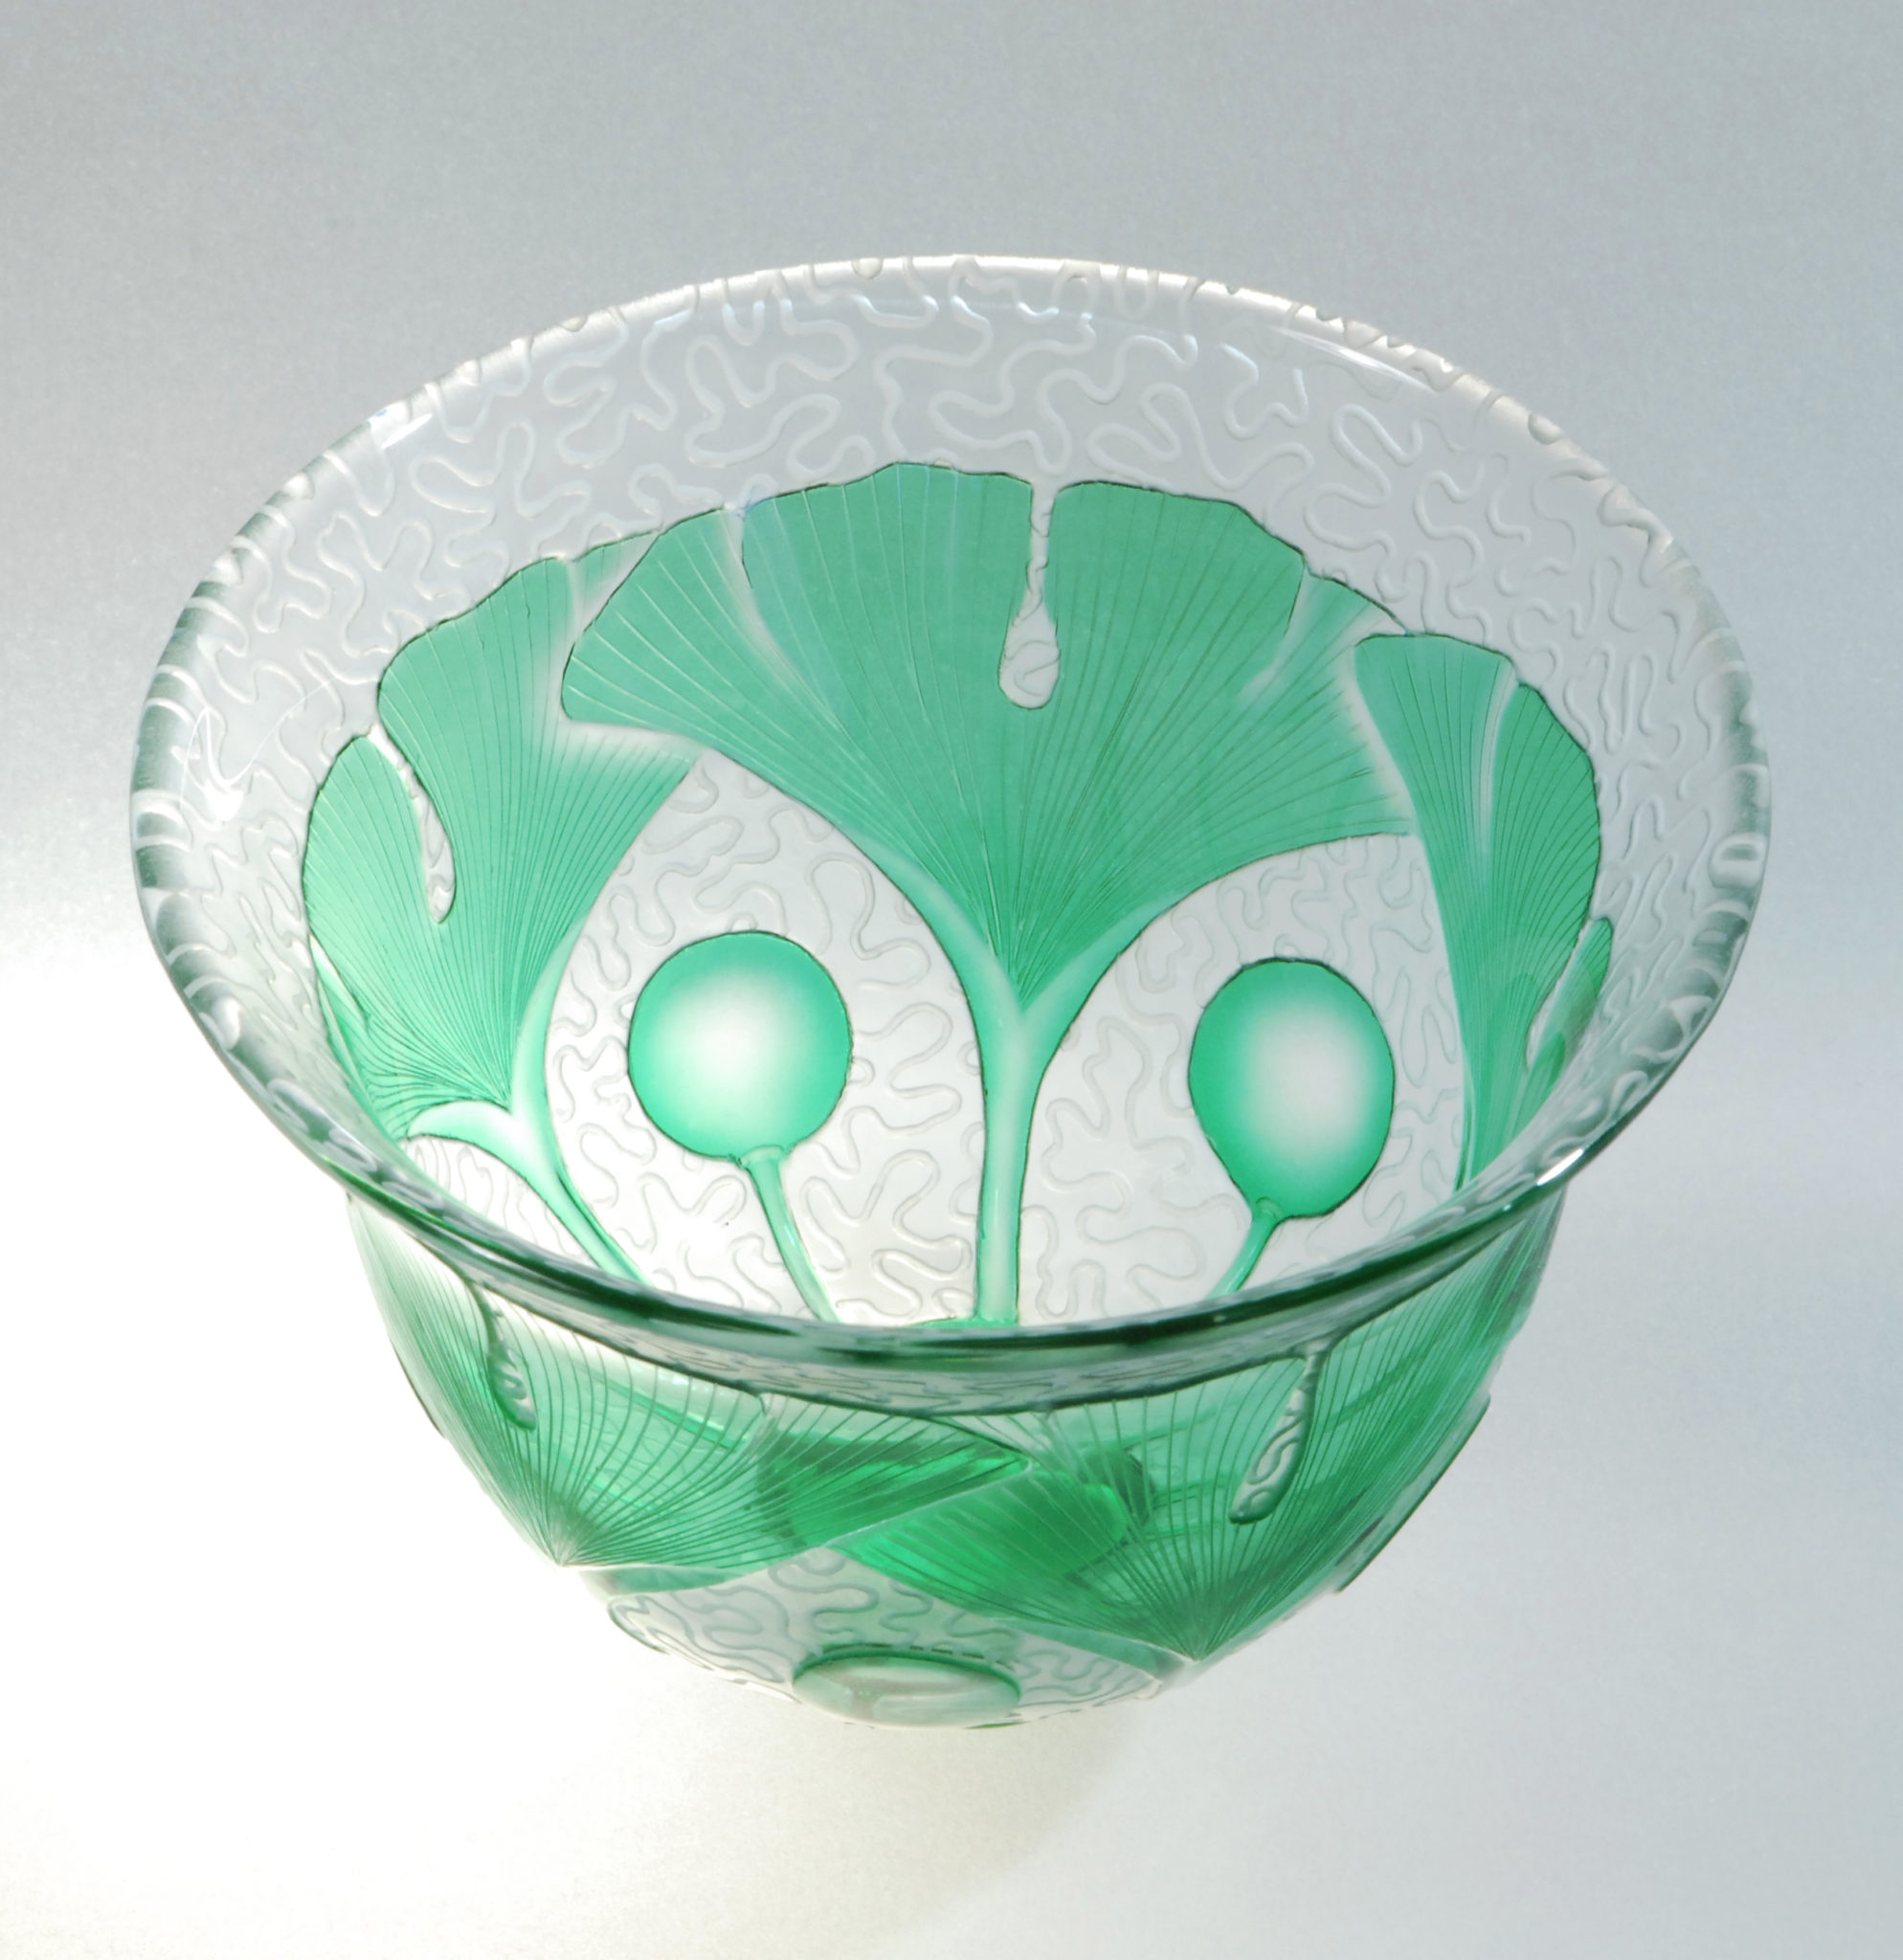 07 tea bowl_10cm H x 11cm D_ blown for me by Sonja Klingler with green overlay